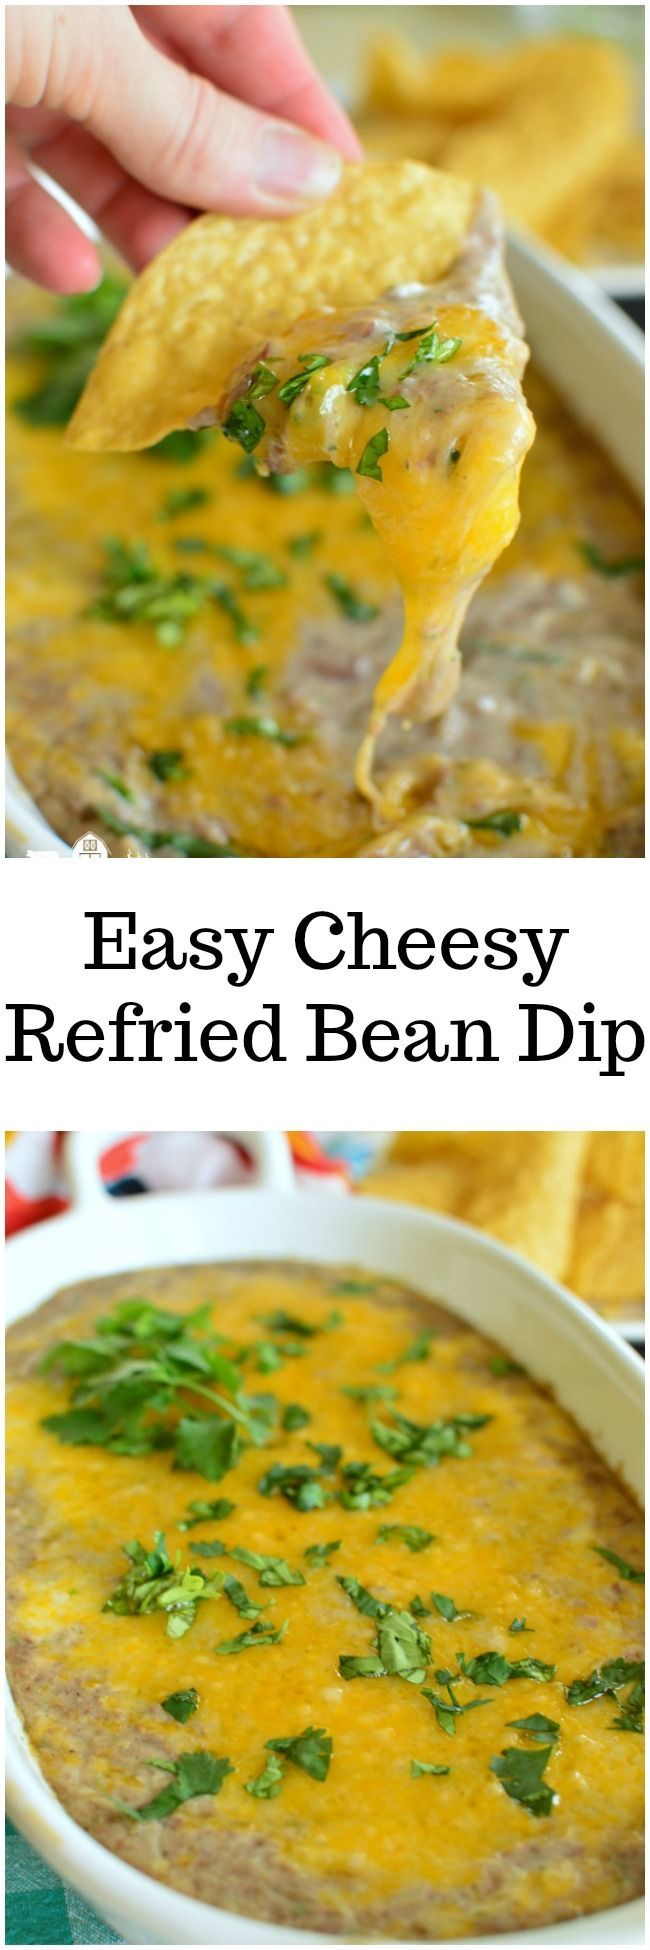 Easy Ccheesy Refried Bean Dip is a warm bean dip that only takes 4 ingredients! It's addictiong though! #cincodemayo #tailgating www.littledairyontheprairie.com